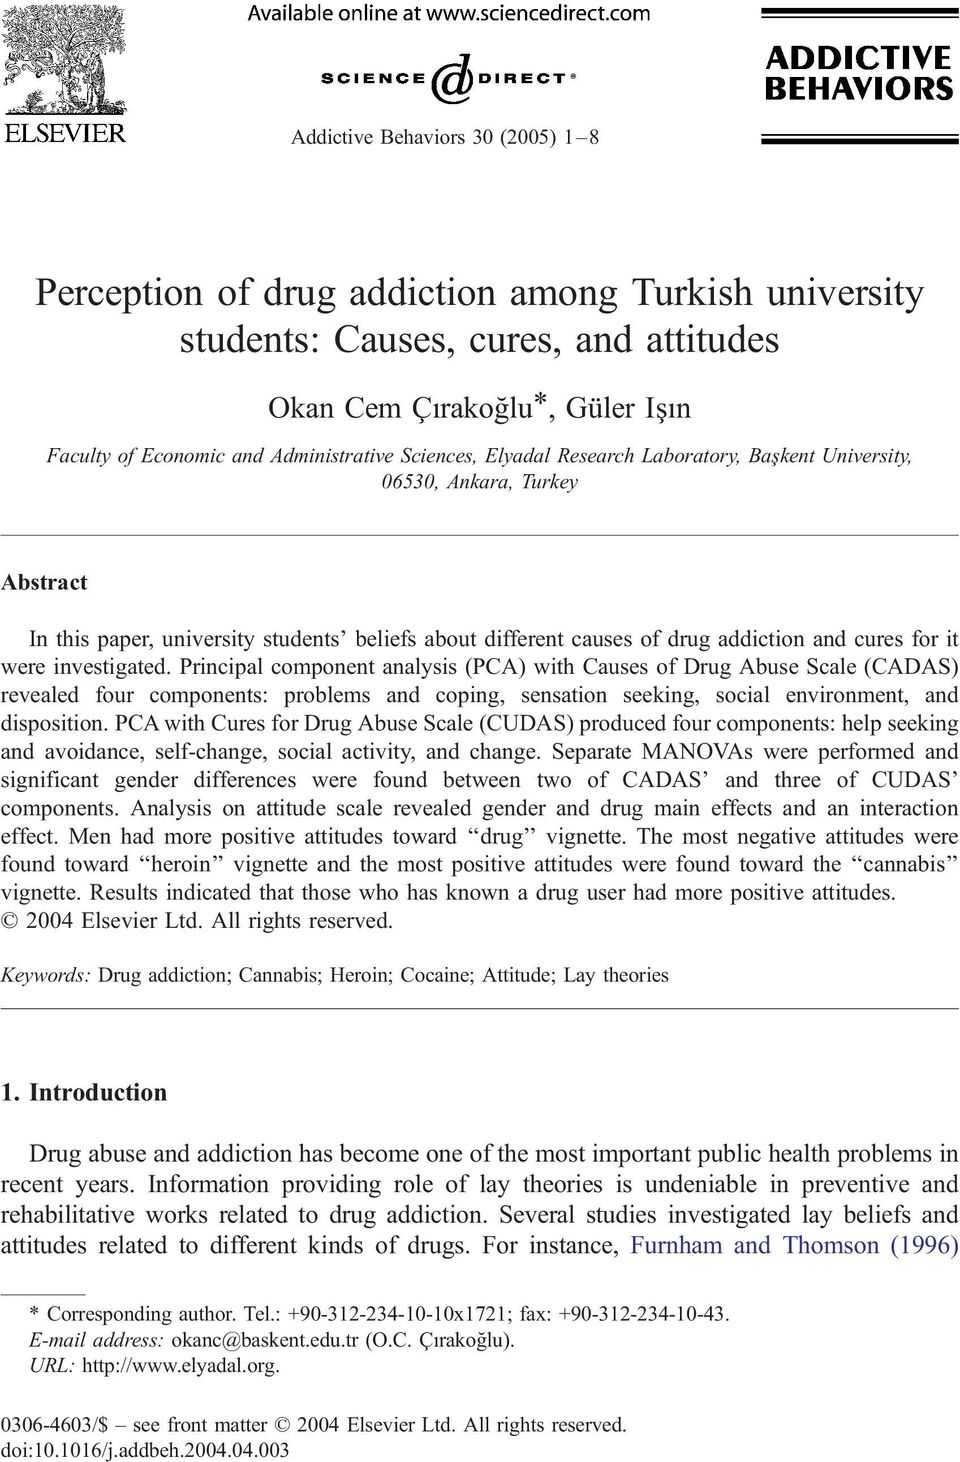 introduction of drug addiction